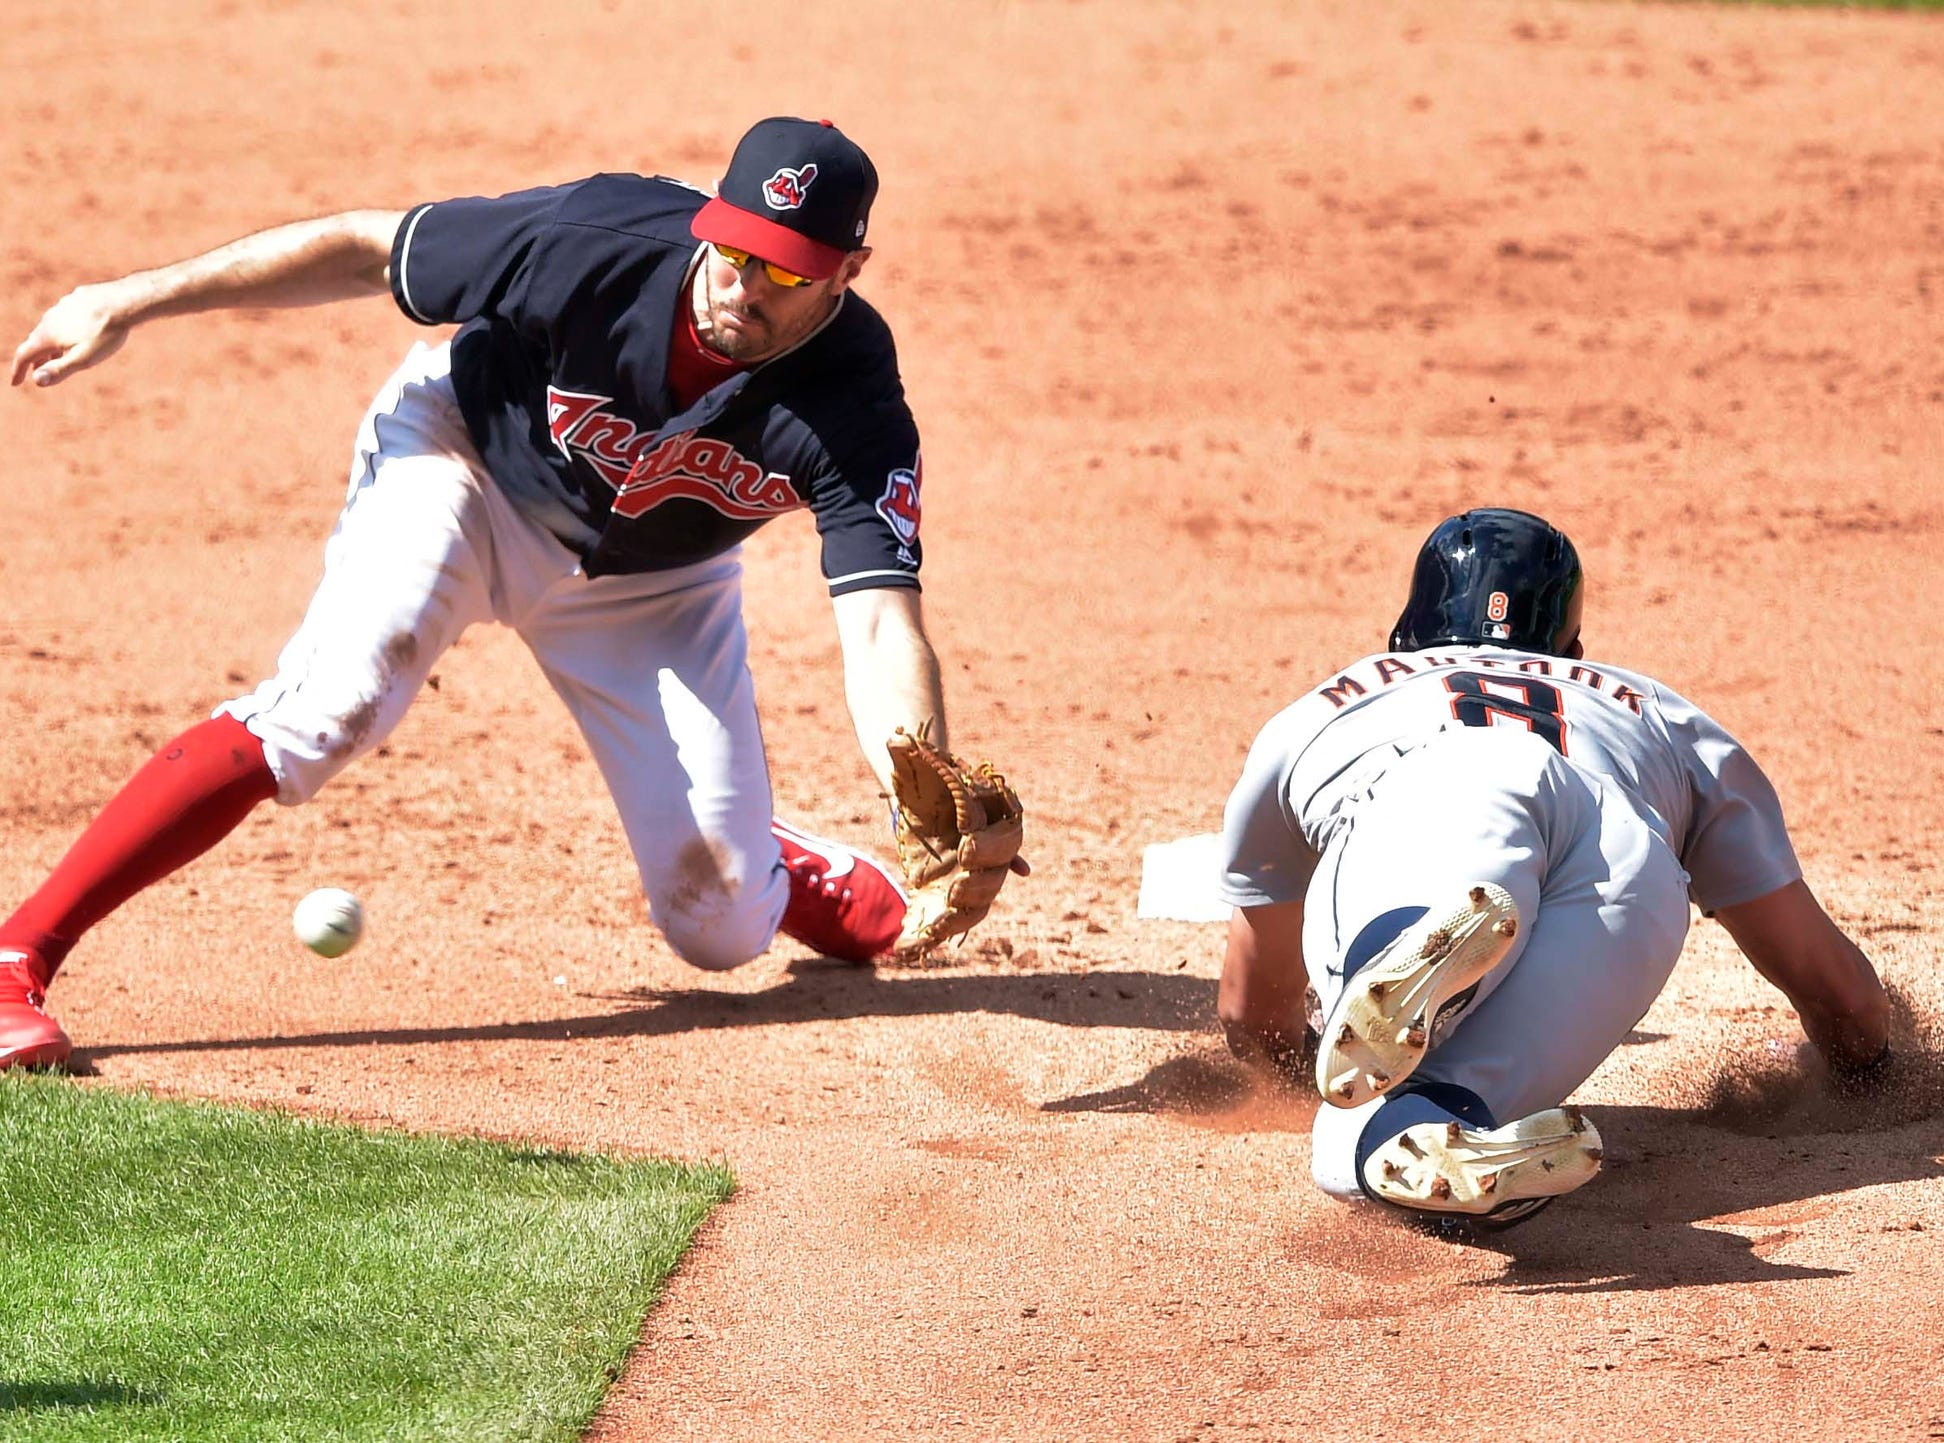 Tigers right fielder Mikie Mahtook steals second base beside Indians second baseman Adam Rosales in the fifth inning of the Tigers' 6-4 win on Sunday, Sept. 16, 2018, in Cleveland.